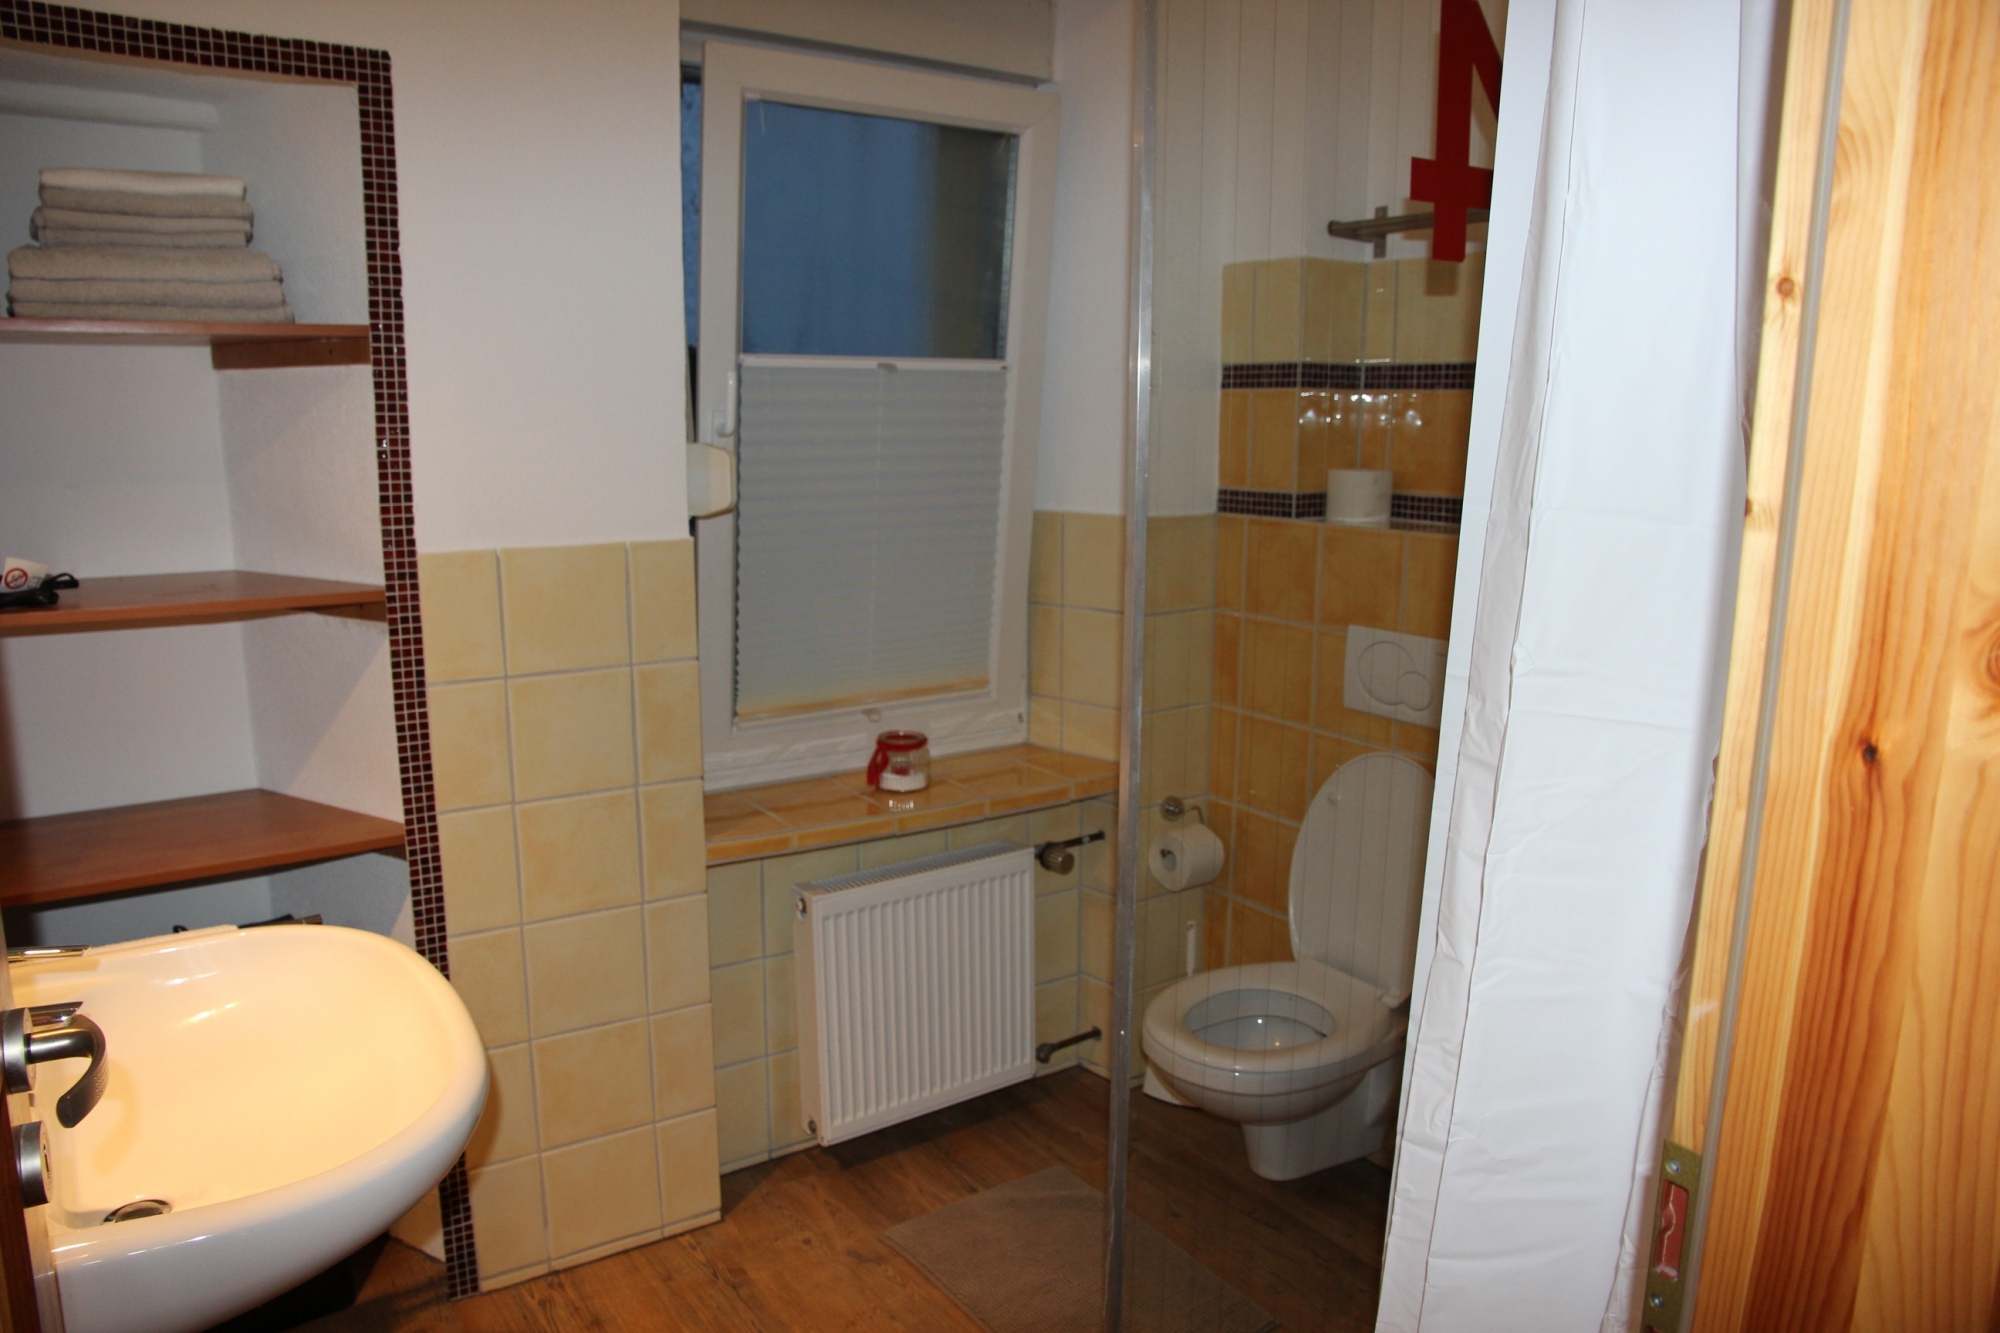 Apartment Bendorf – Badezimmer:2